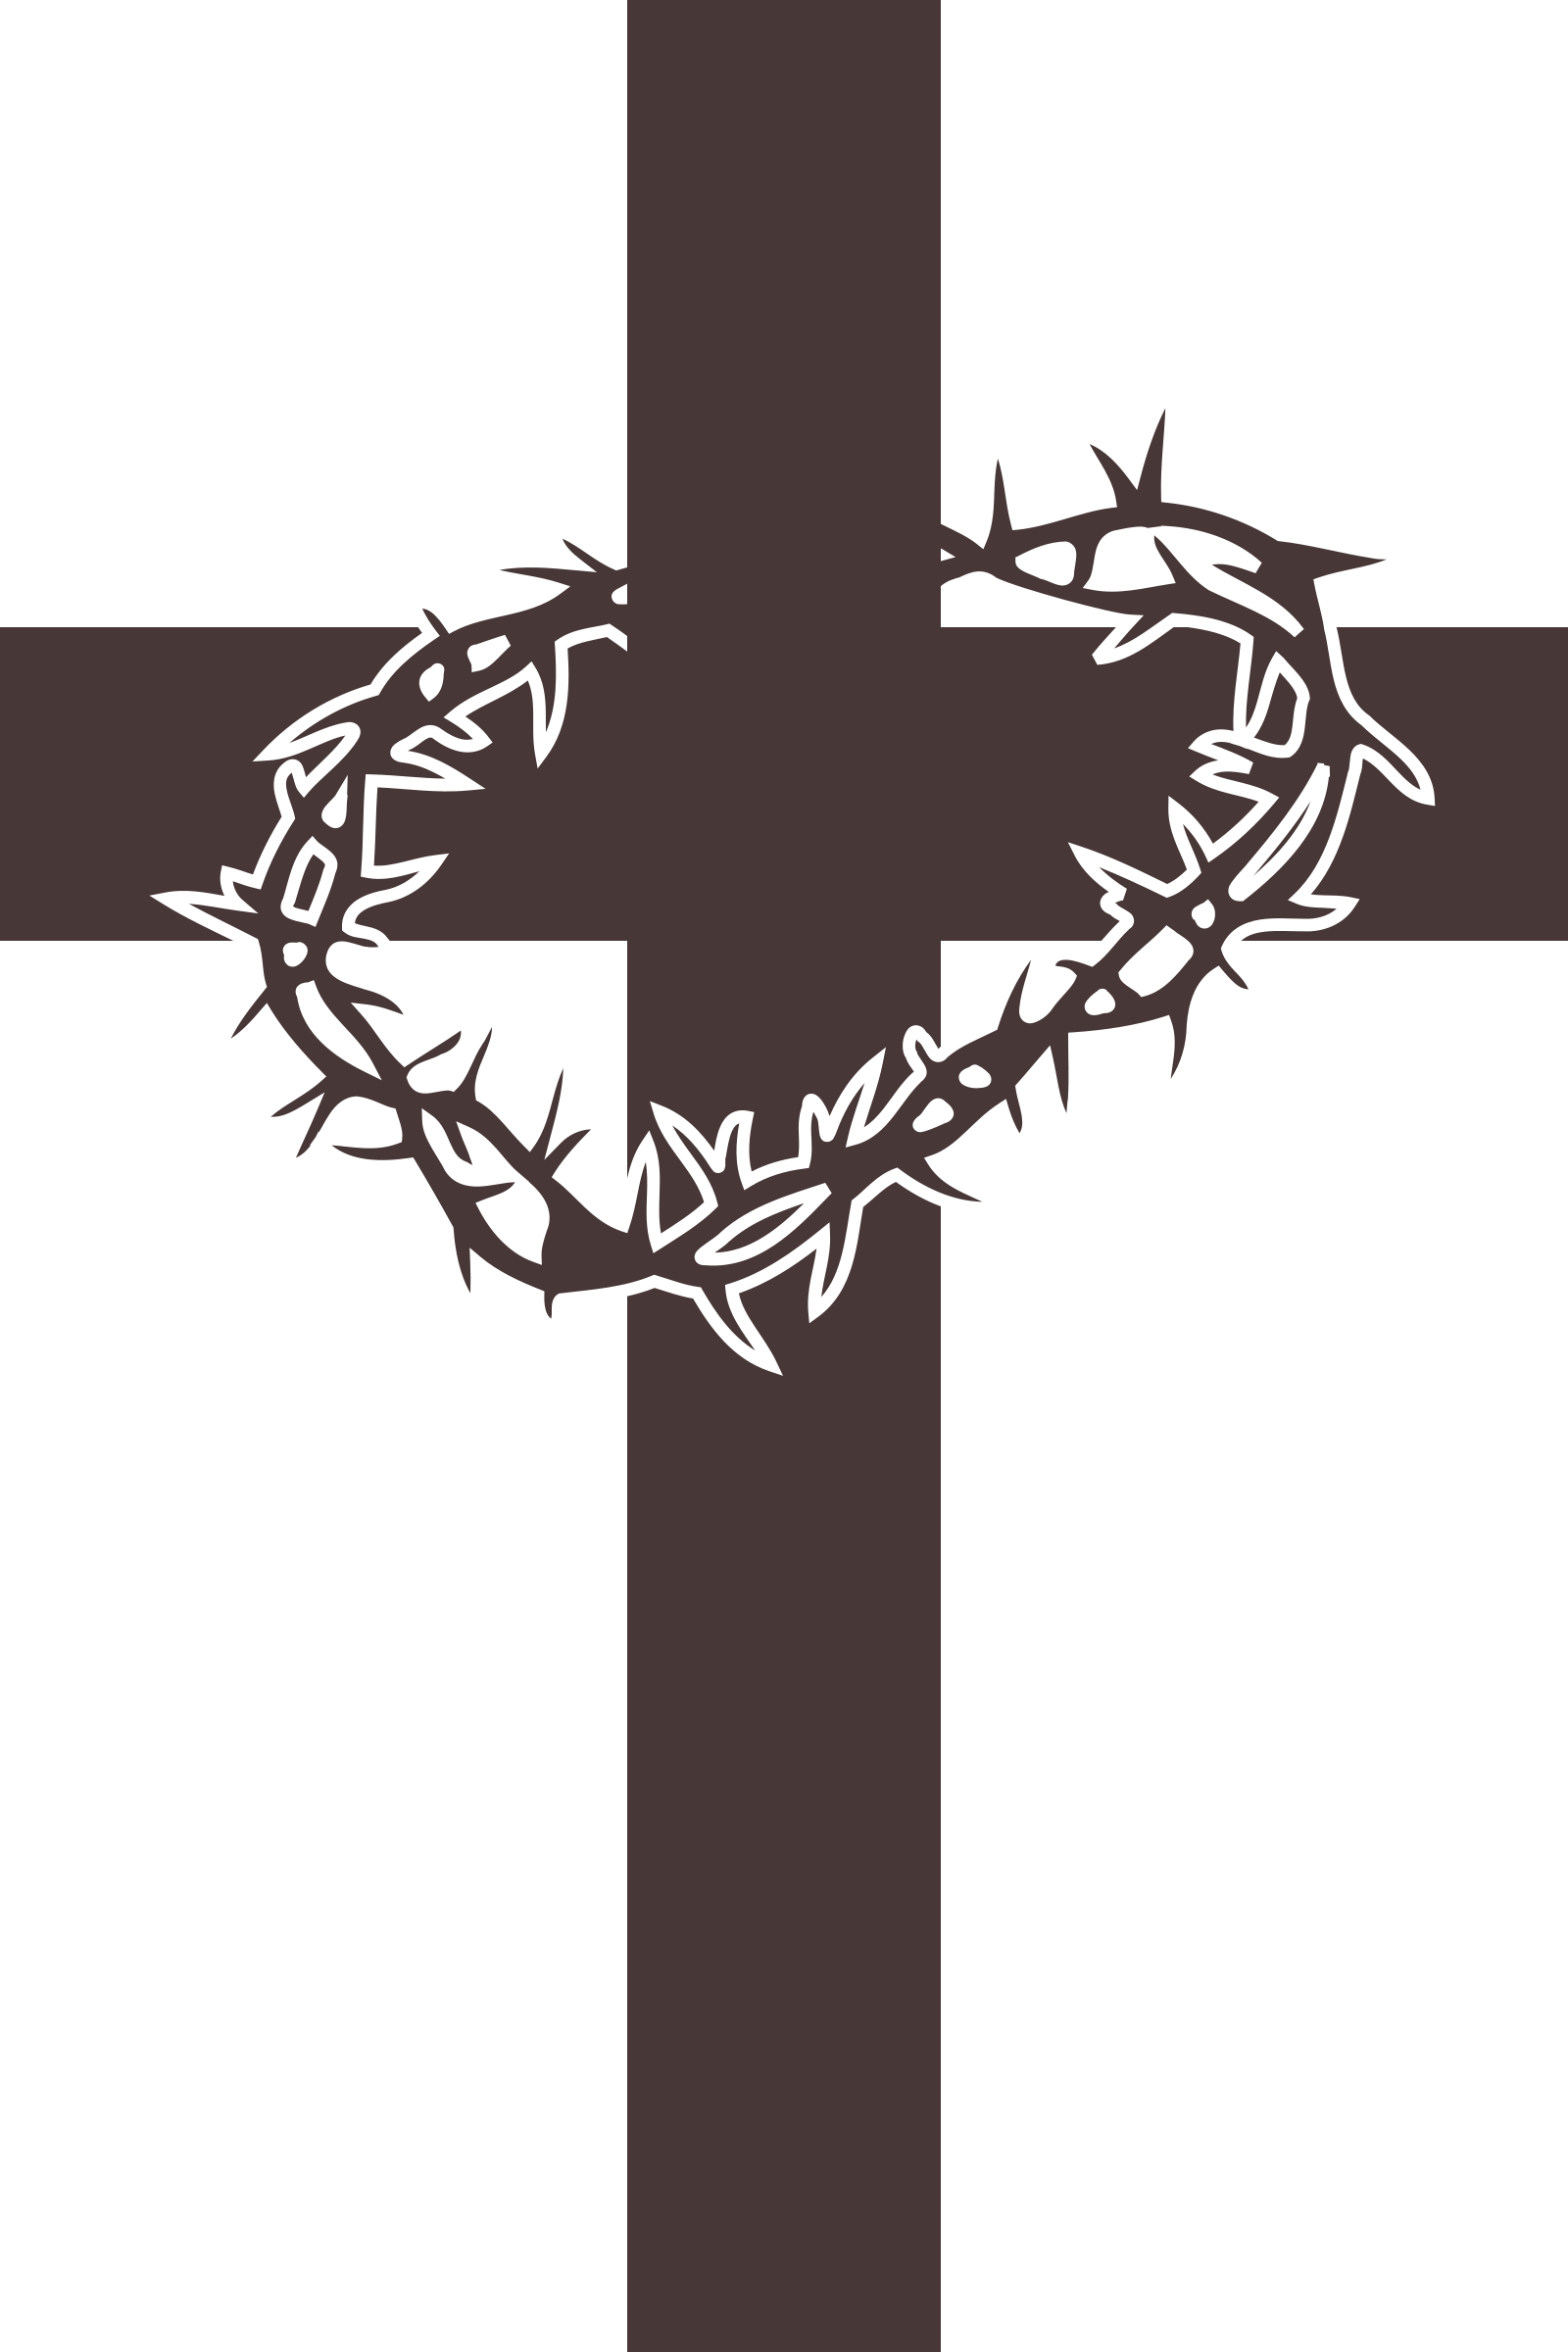 Holy week clipart jesus passion. Services peace lutheran church